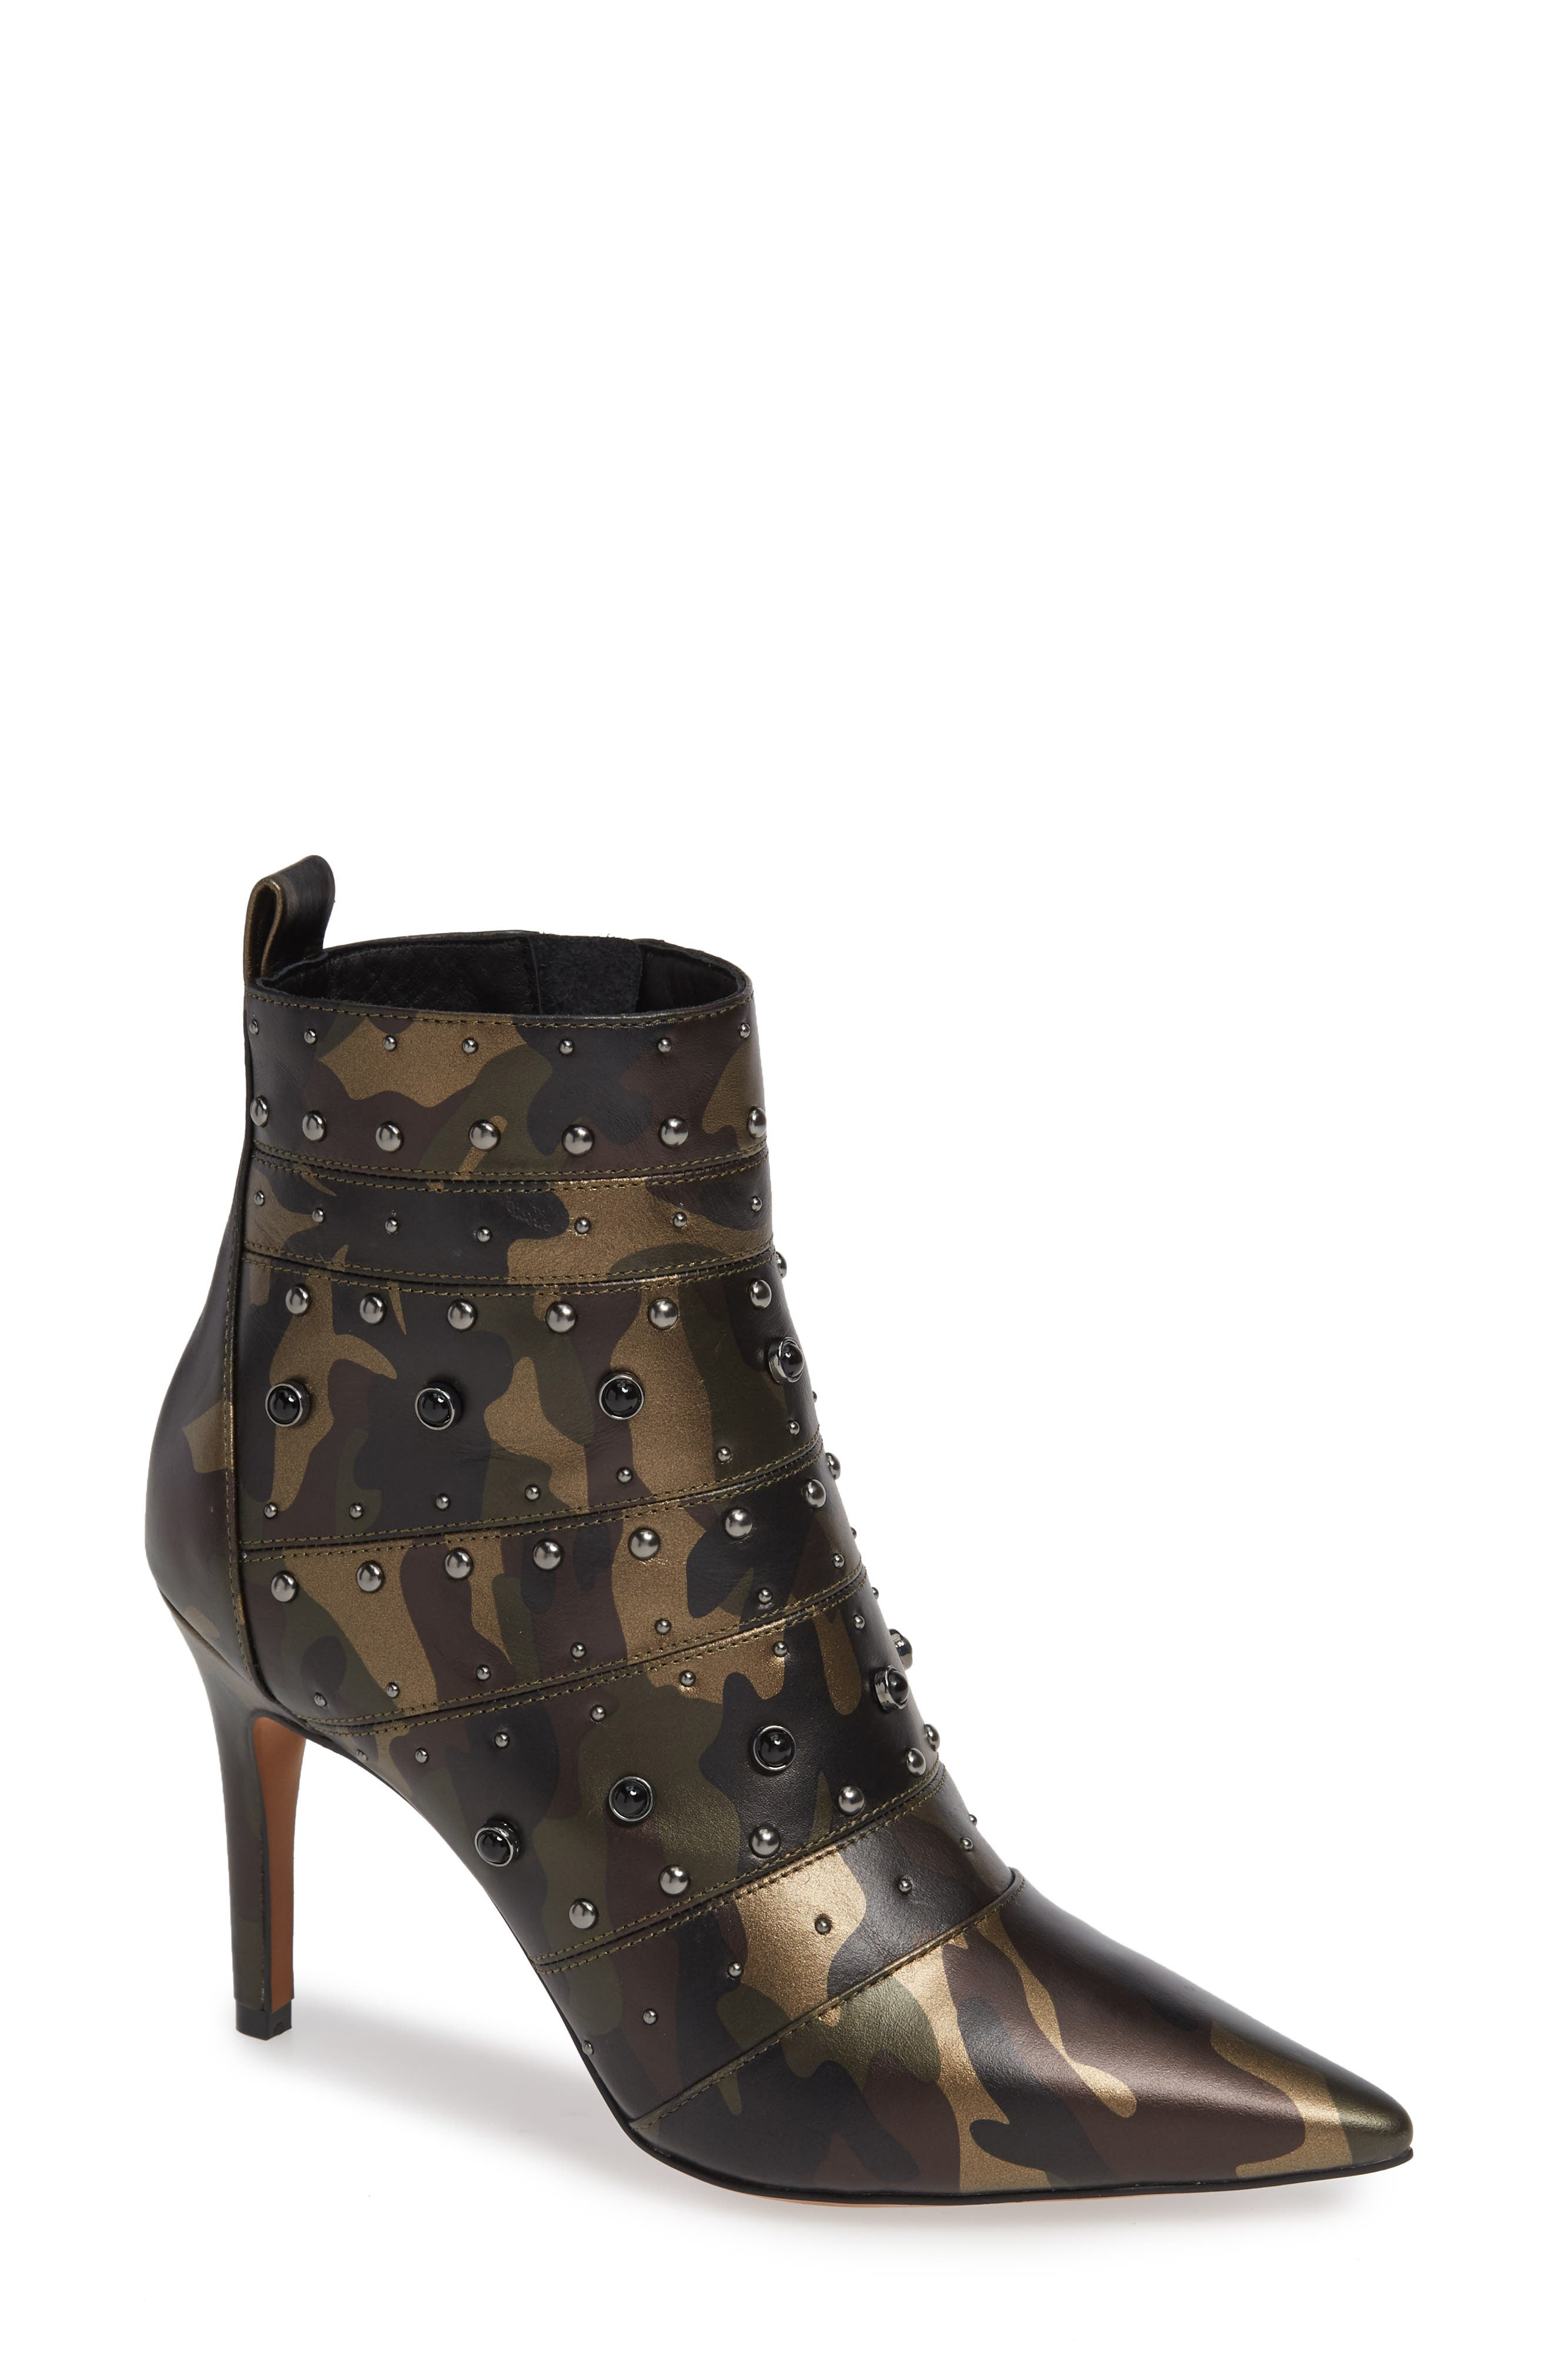 Nara Studded Bootie,                             Main thumbnail 1, color,                             CAMO LEATHER